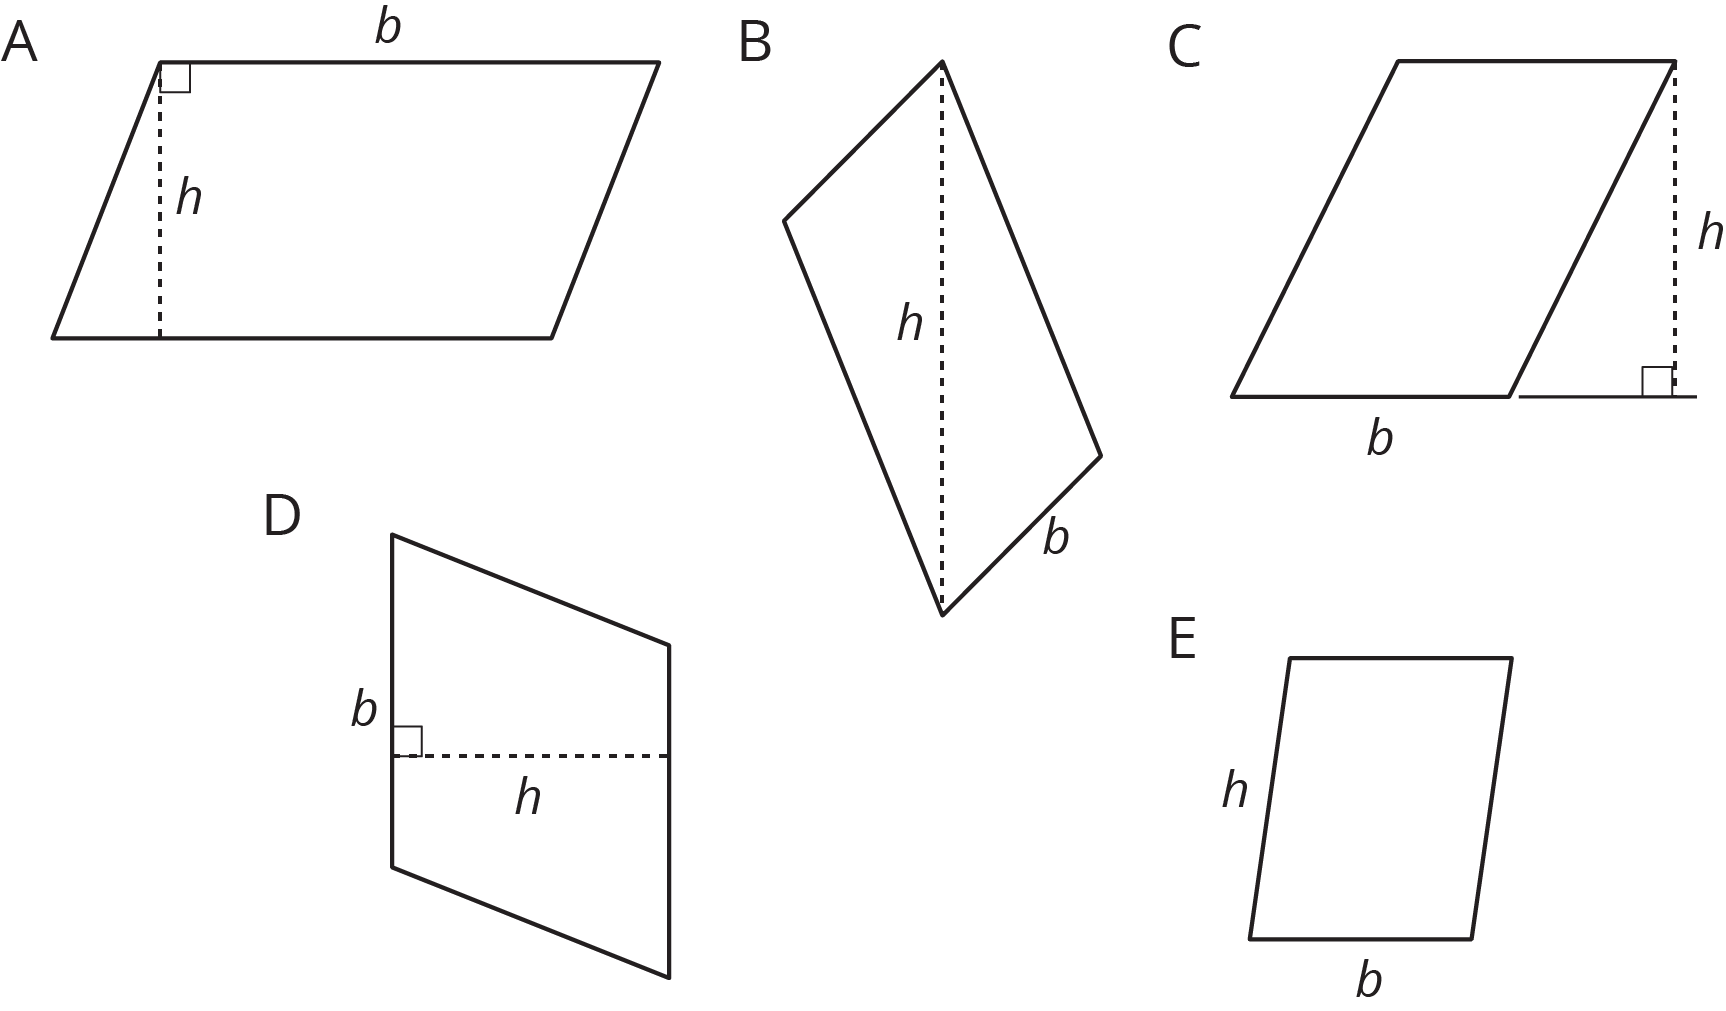 hight resolution of Bases and Heights of Parallelograms: Illustrative Mathematics